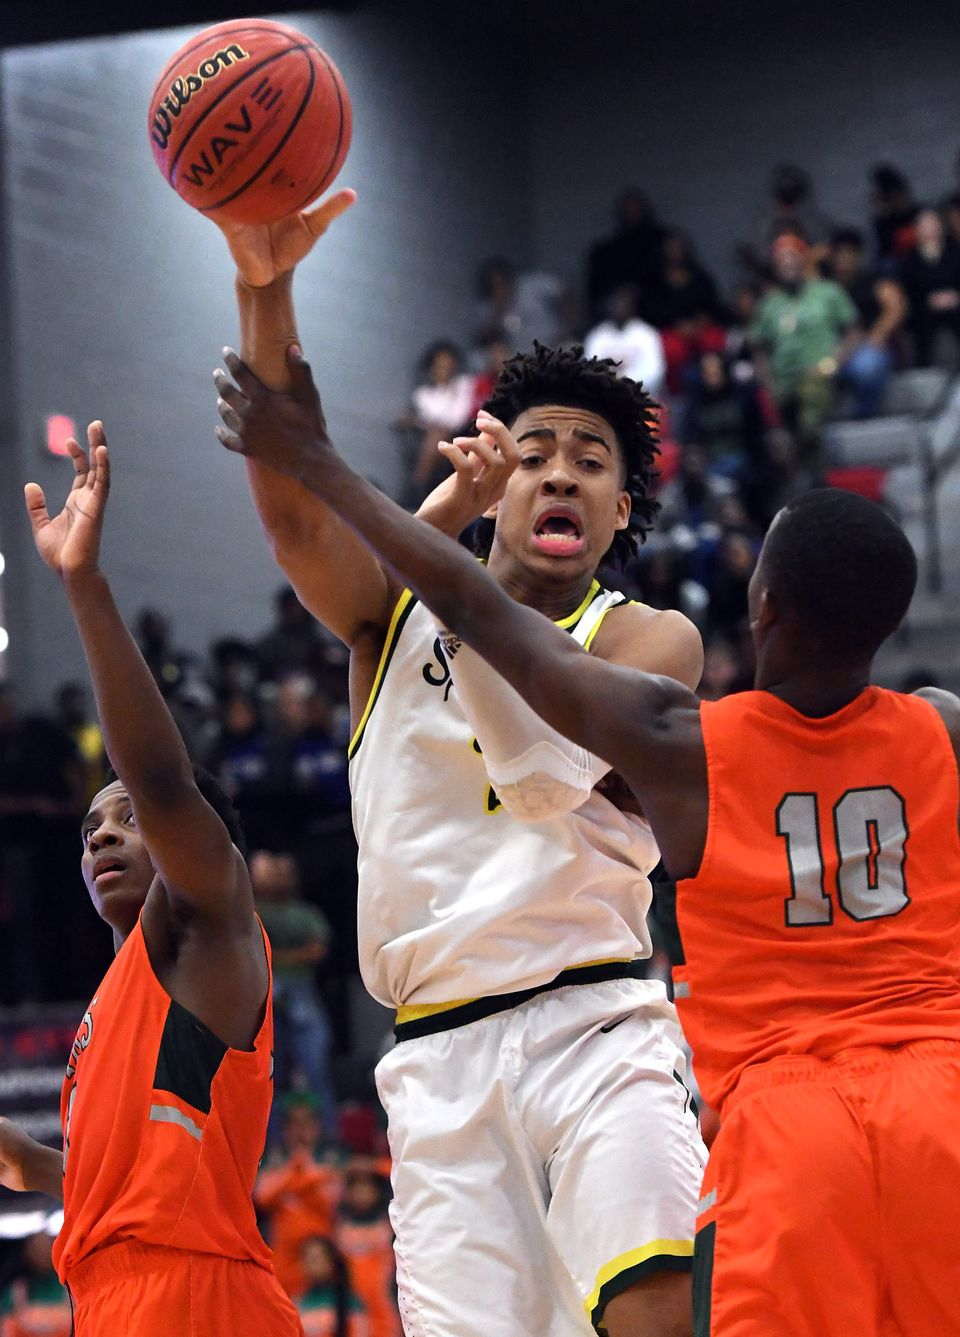 Mountain Brook's Trendon Watford Becomes AHSAA Career Rebound Leader in Hewitt Win